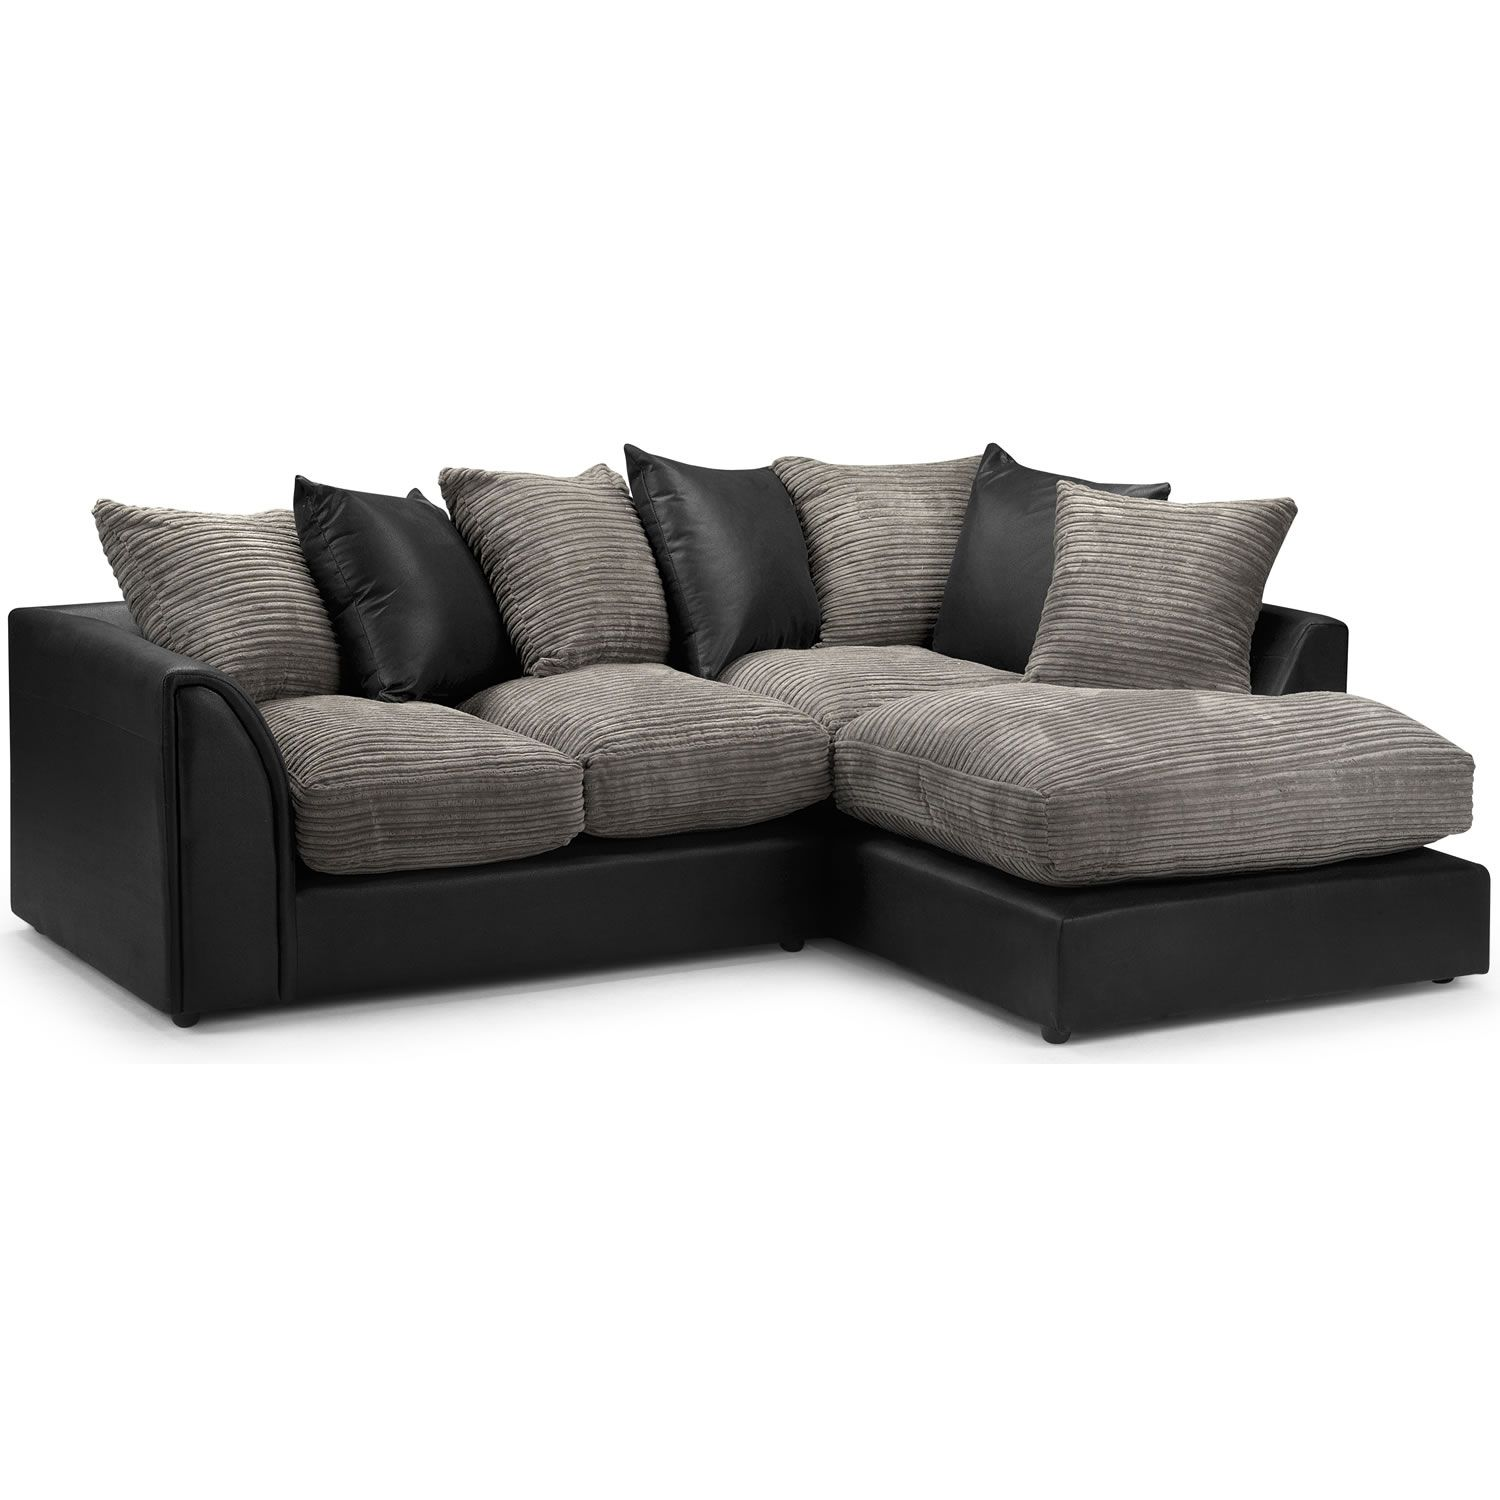 Byron Corner Sofa ly £449 99 sofasworld bit